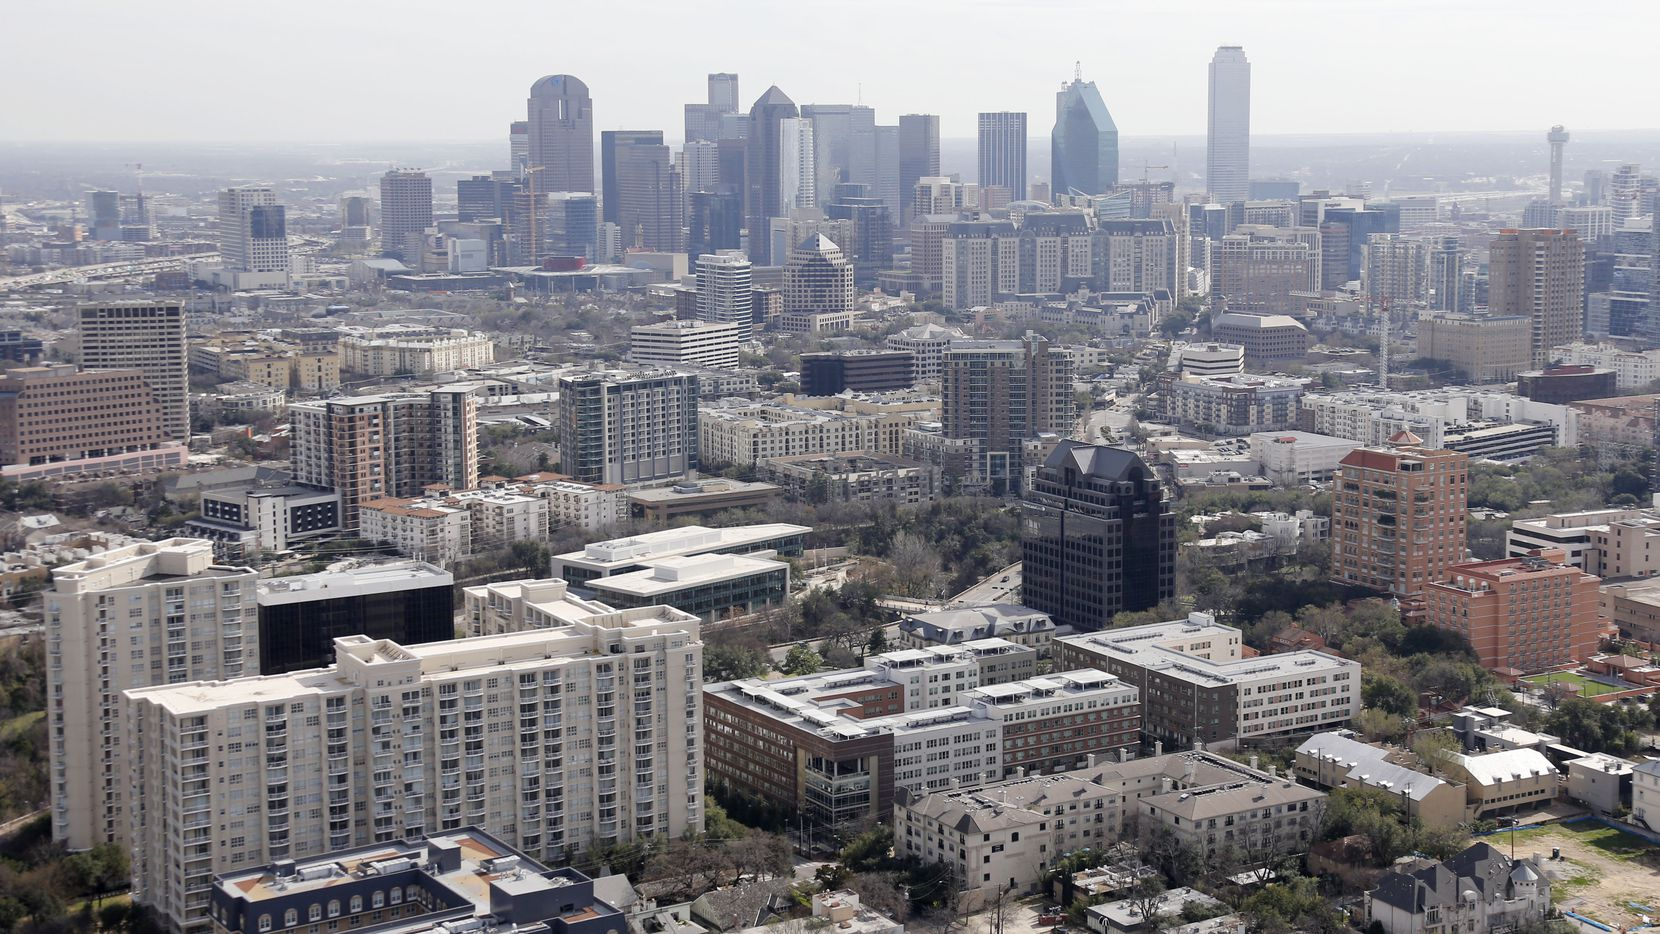 Apartment, condominium and office complexes in the Uptown, Oak Lawn, Turtle Creek and Cedar Springs areas north of downtown Dallas were photographed in February.